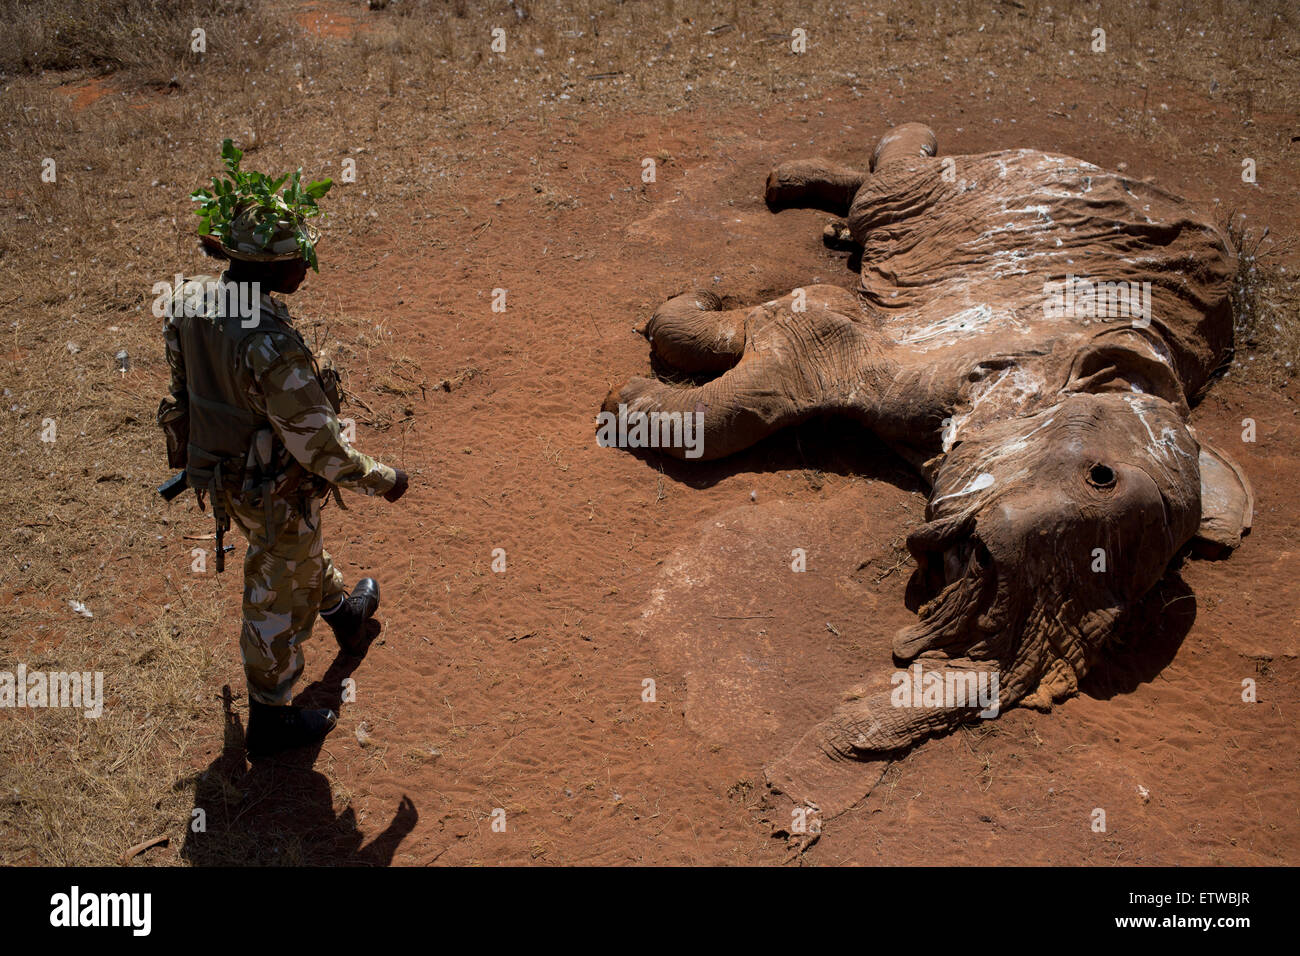 Kenya Wildlife Ranger Sgt. Benson Epae from the anti poaching unit look at an elephant that was killed by poachers - Stock Image